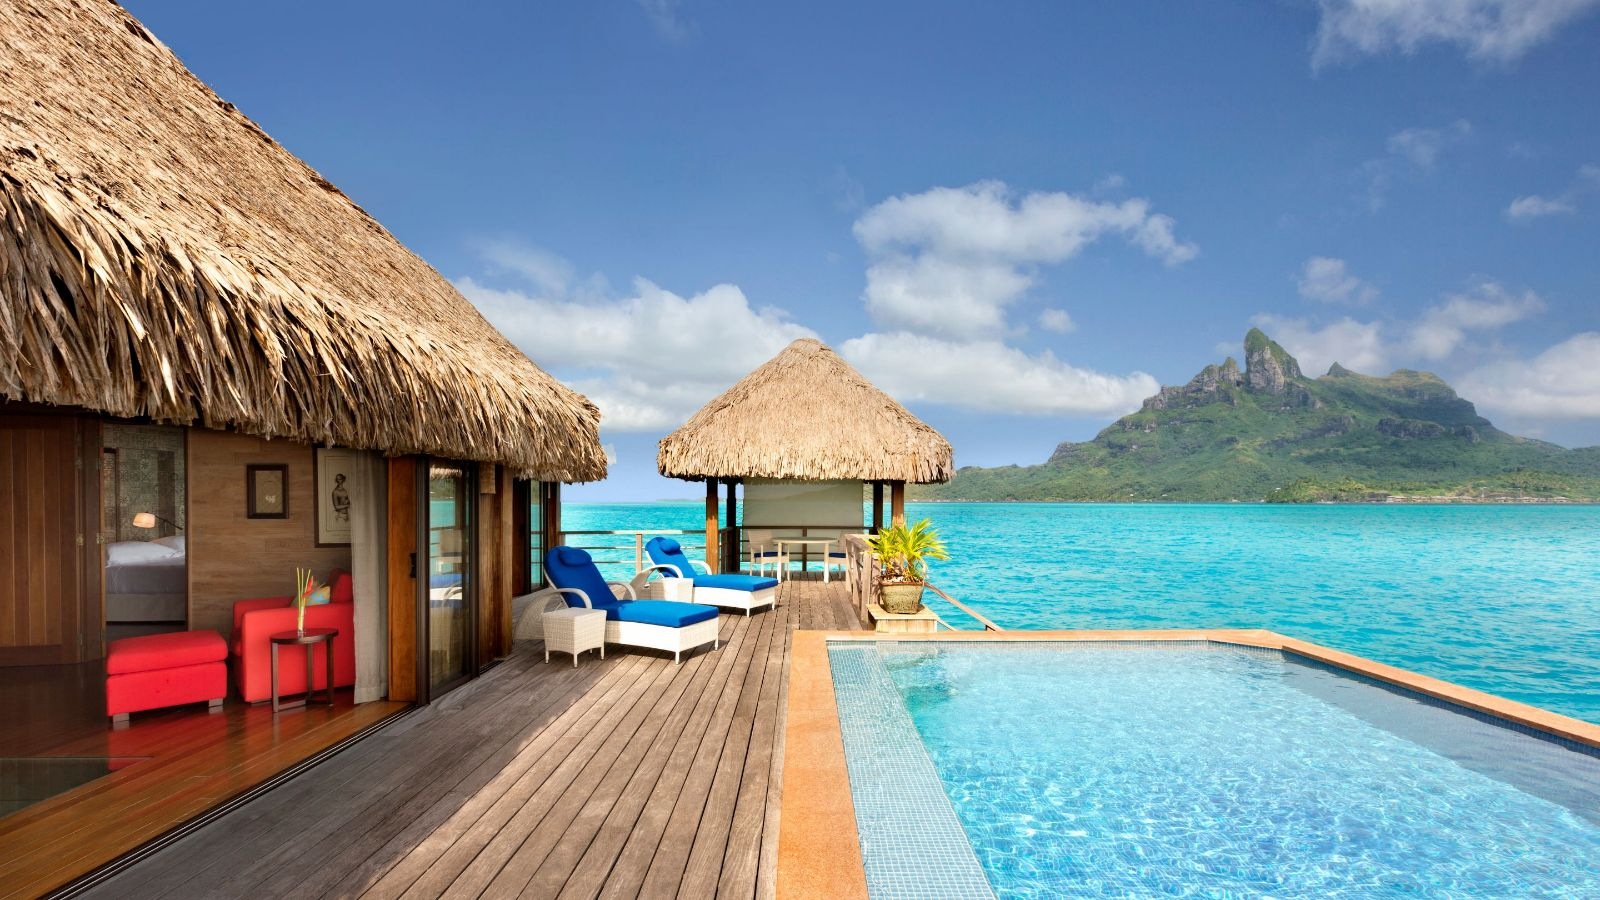 The St. Regis Bora Bora Resort - Overwater Royal Otemanu 2-Bedroom Villa with Pool